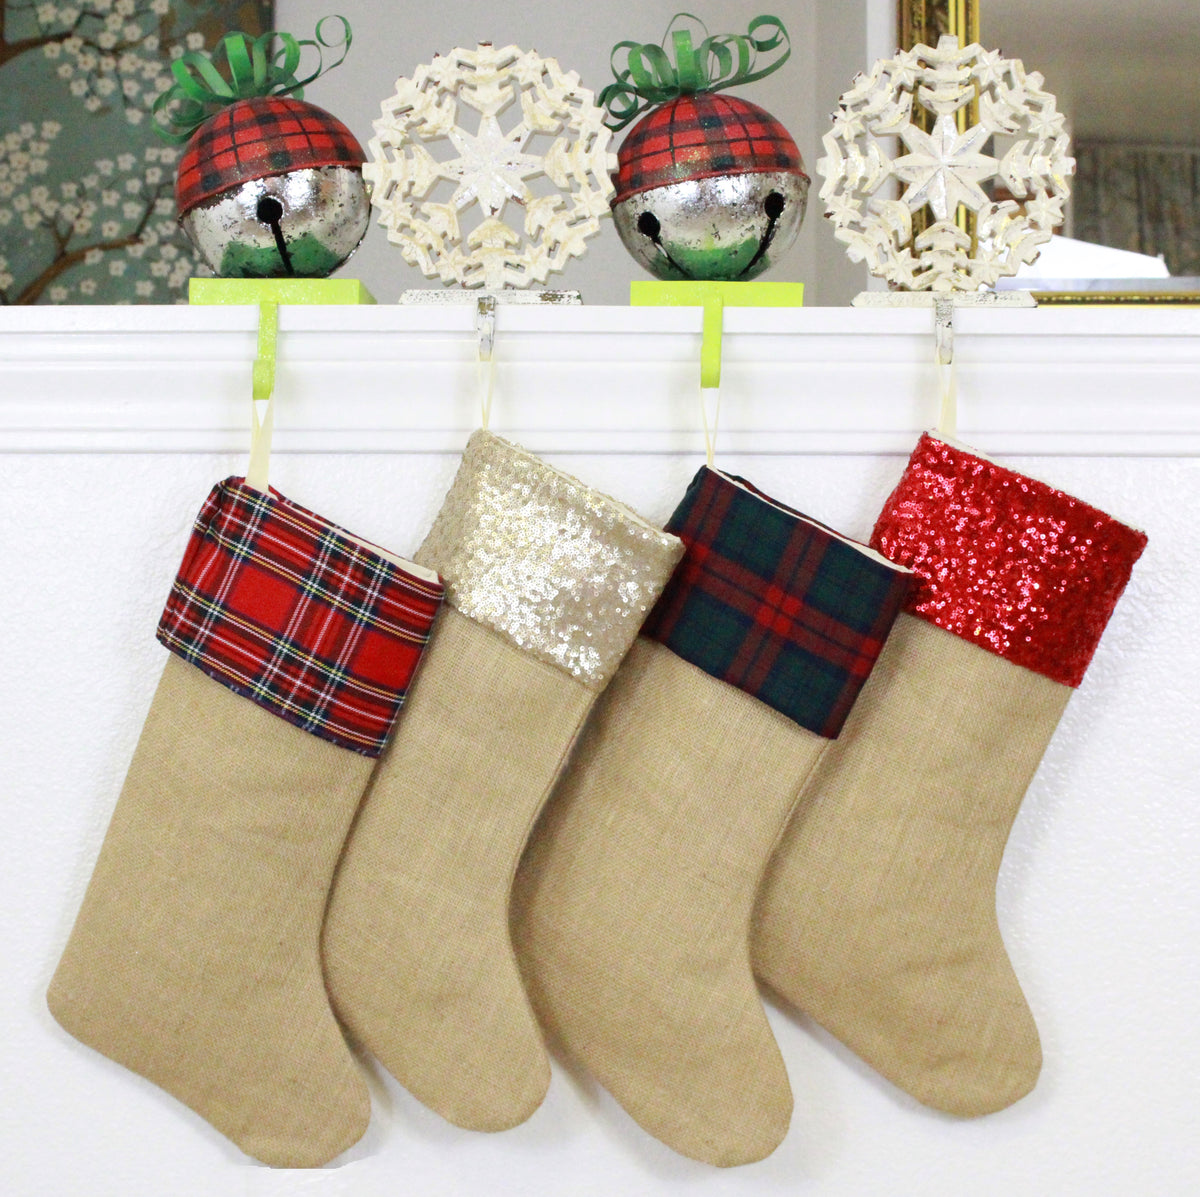 Burlap Christmas Stockings.Burlap Christmas Stockings Set Of 4 Strong And Durable Handmade In Usa